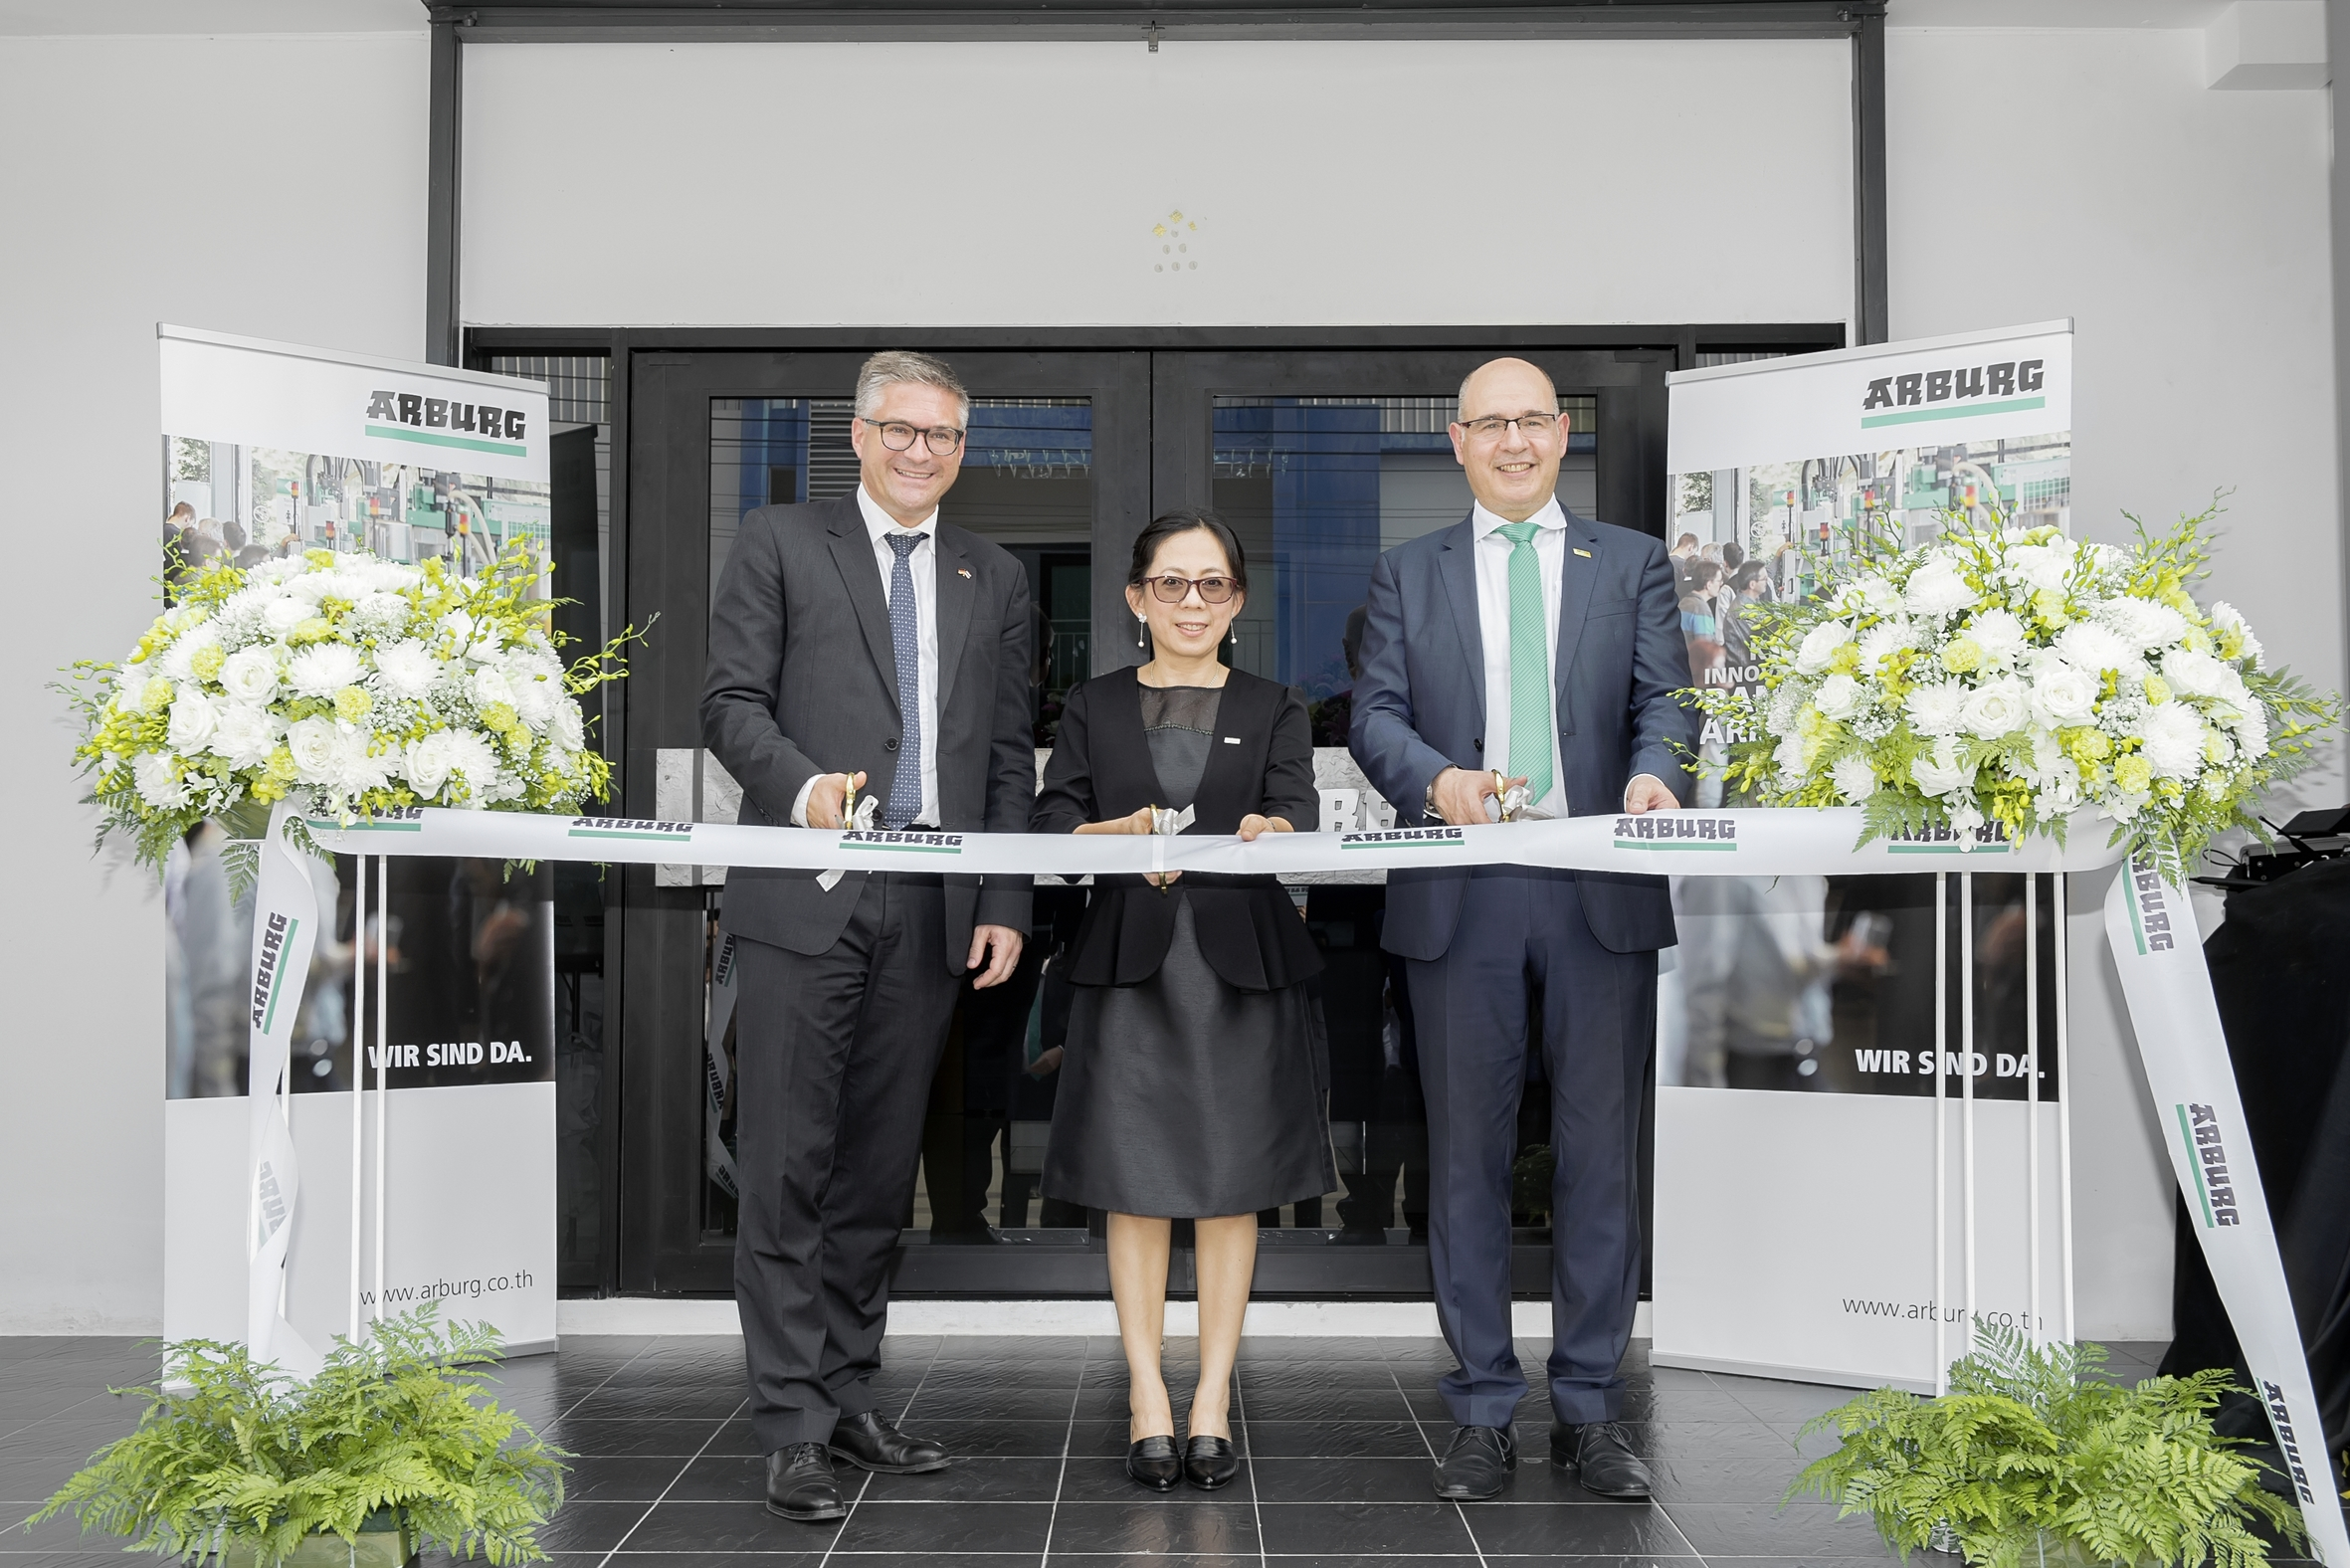 Inauguration of the new Arburg premises in Thailand (from right): Andrea Carta, Director of Overseas Sales, Ratree Boonsay, Managing Director Arburg Thailand, and Dr. Alexander Raubold, Counsellor Economic and Commercial Affairs of the German embassy in Bangkok. (Source: Arburg)